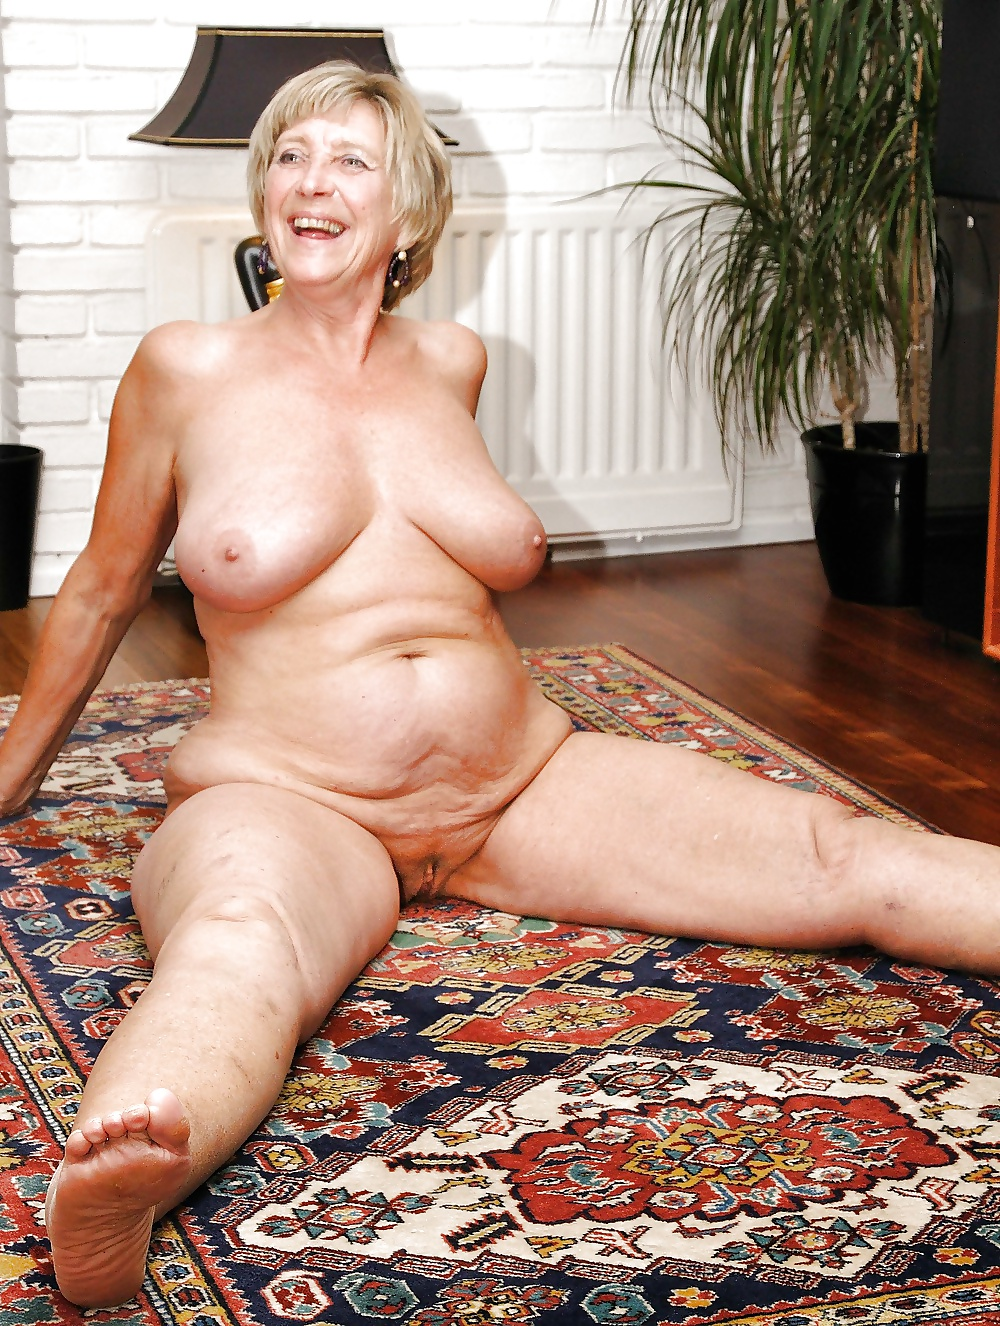 Naughty grannies and matures, hot granny pussy